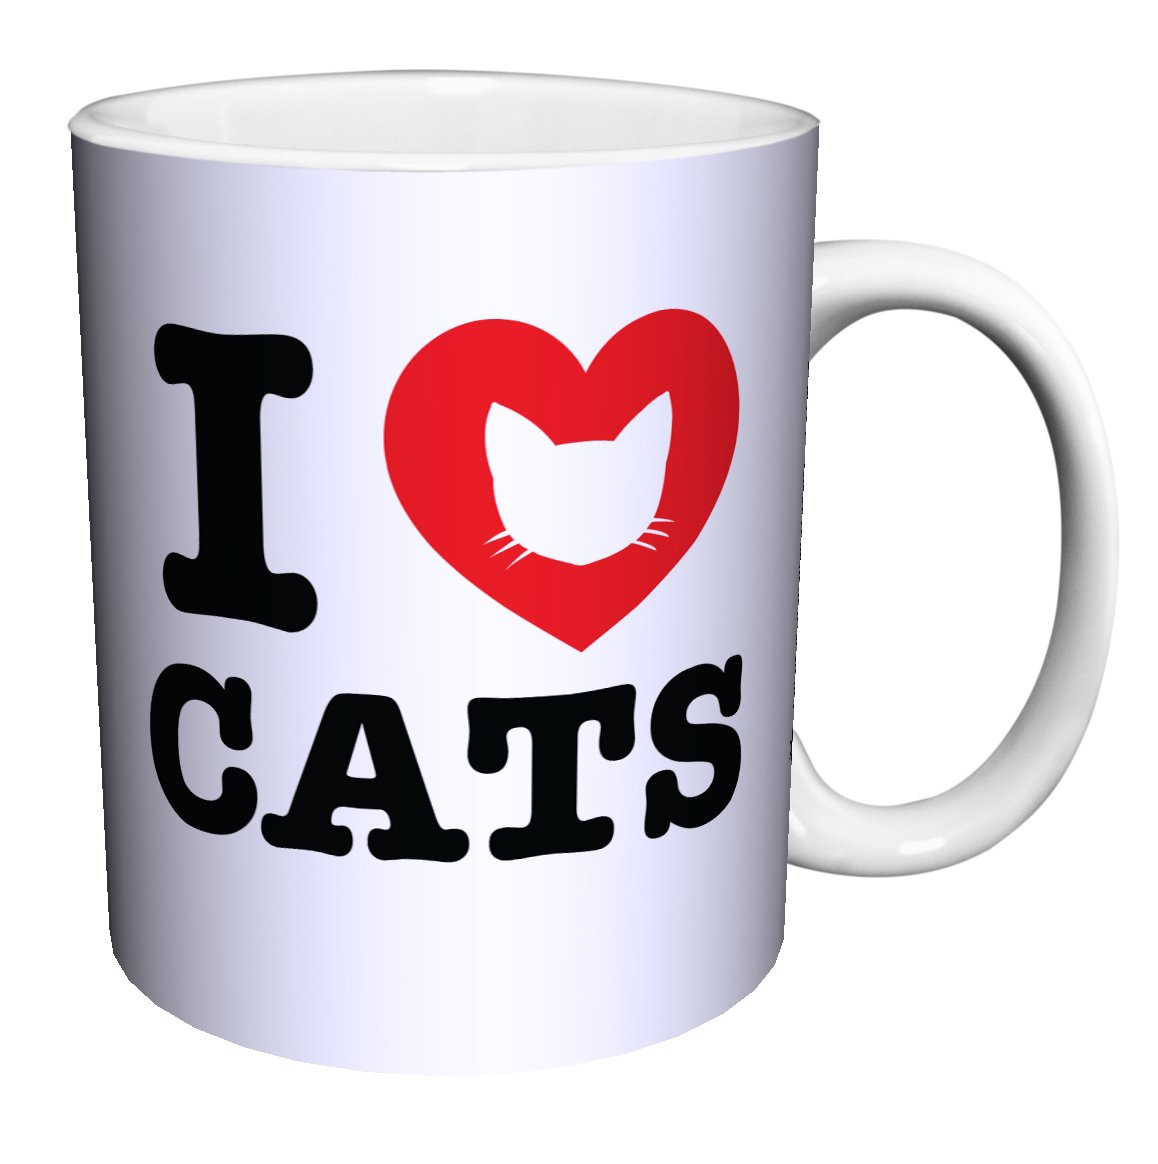 I Heart Cats Novelty Animal Lover Pet Quote Decorative Ceramic Gift Coffee (Tea, Cocoa) 11 Oz. Mug by Culturenik (Image #1)